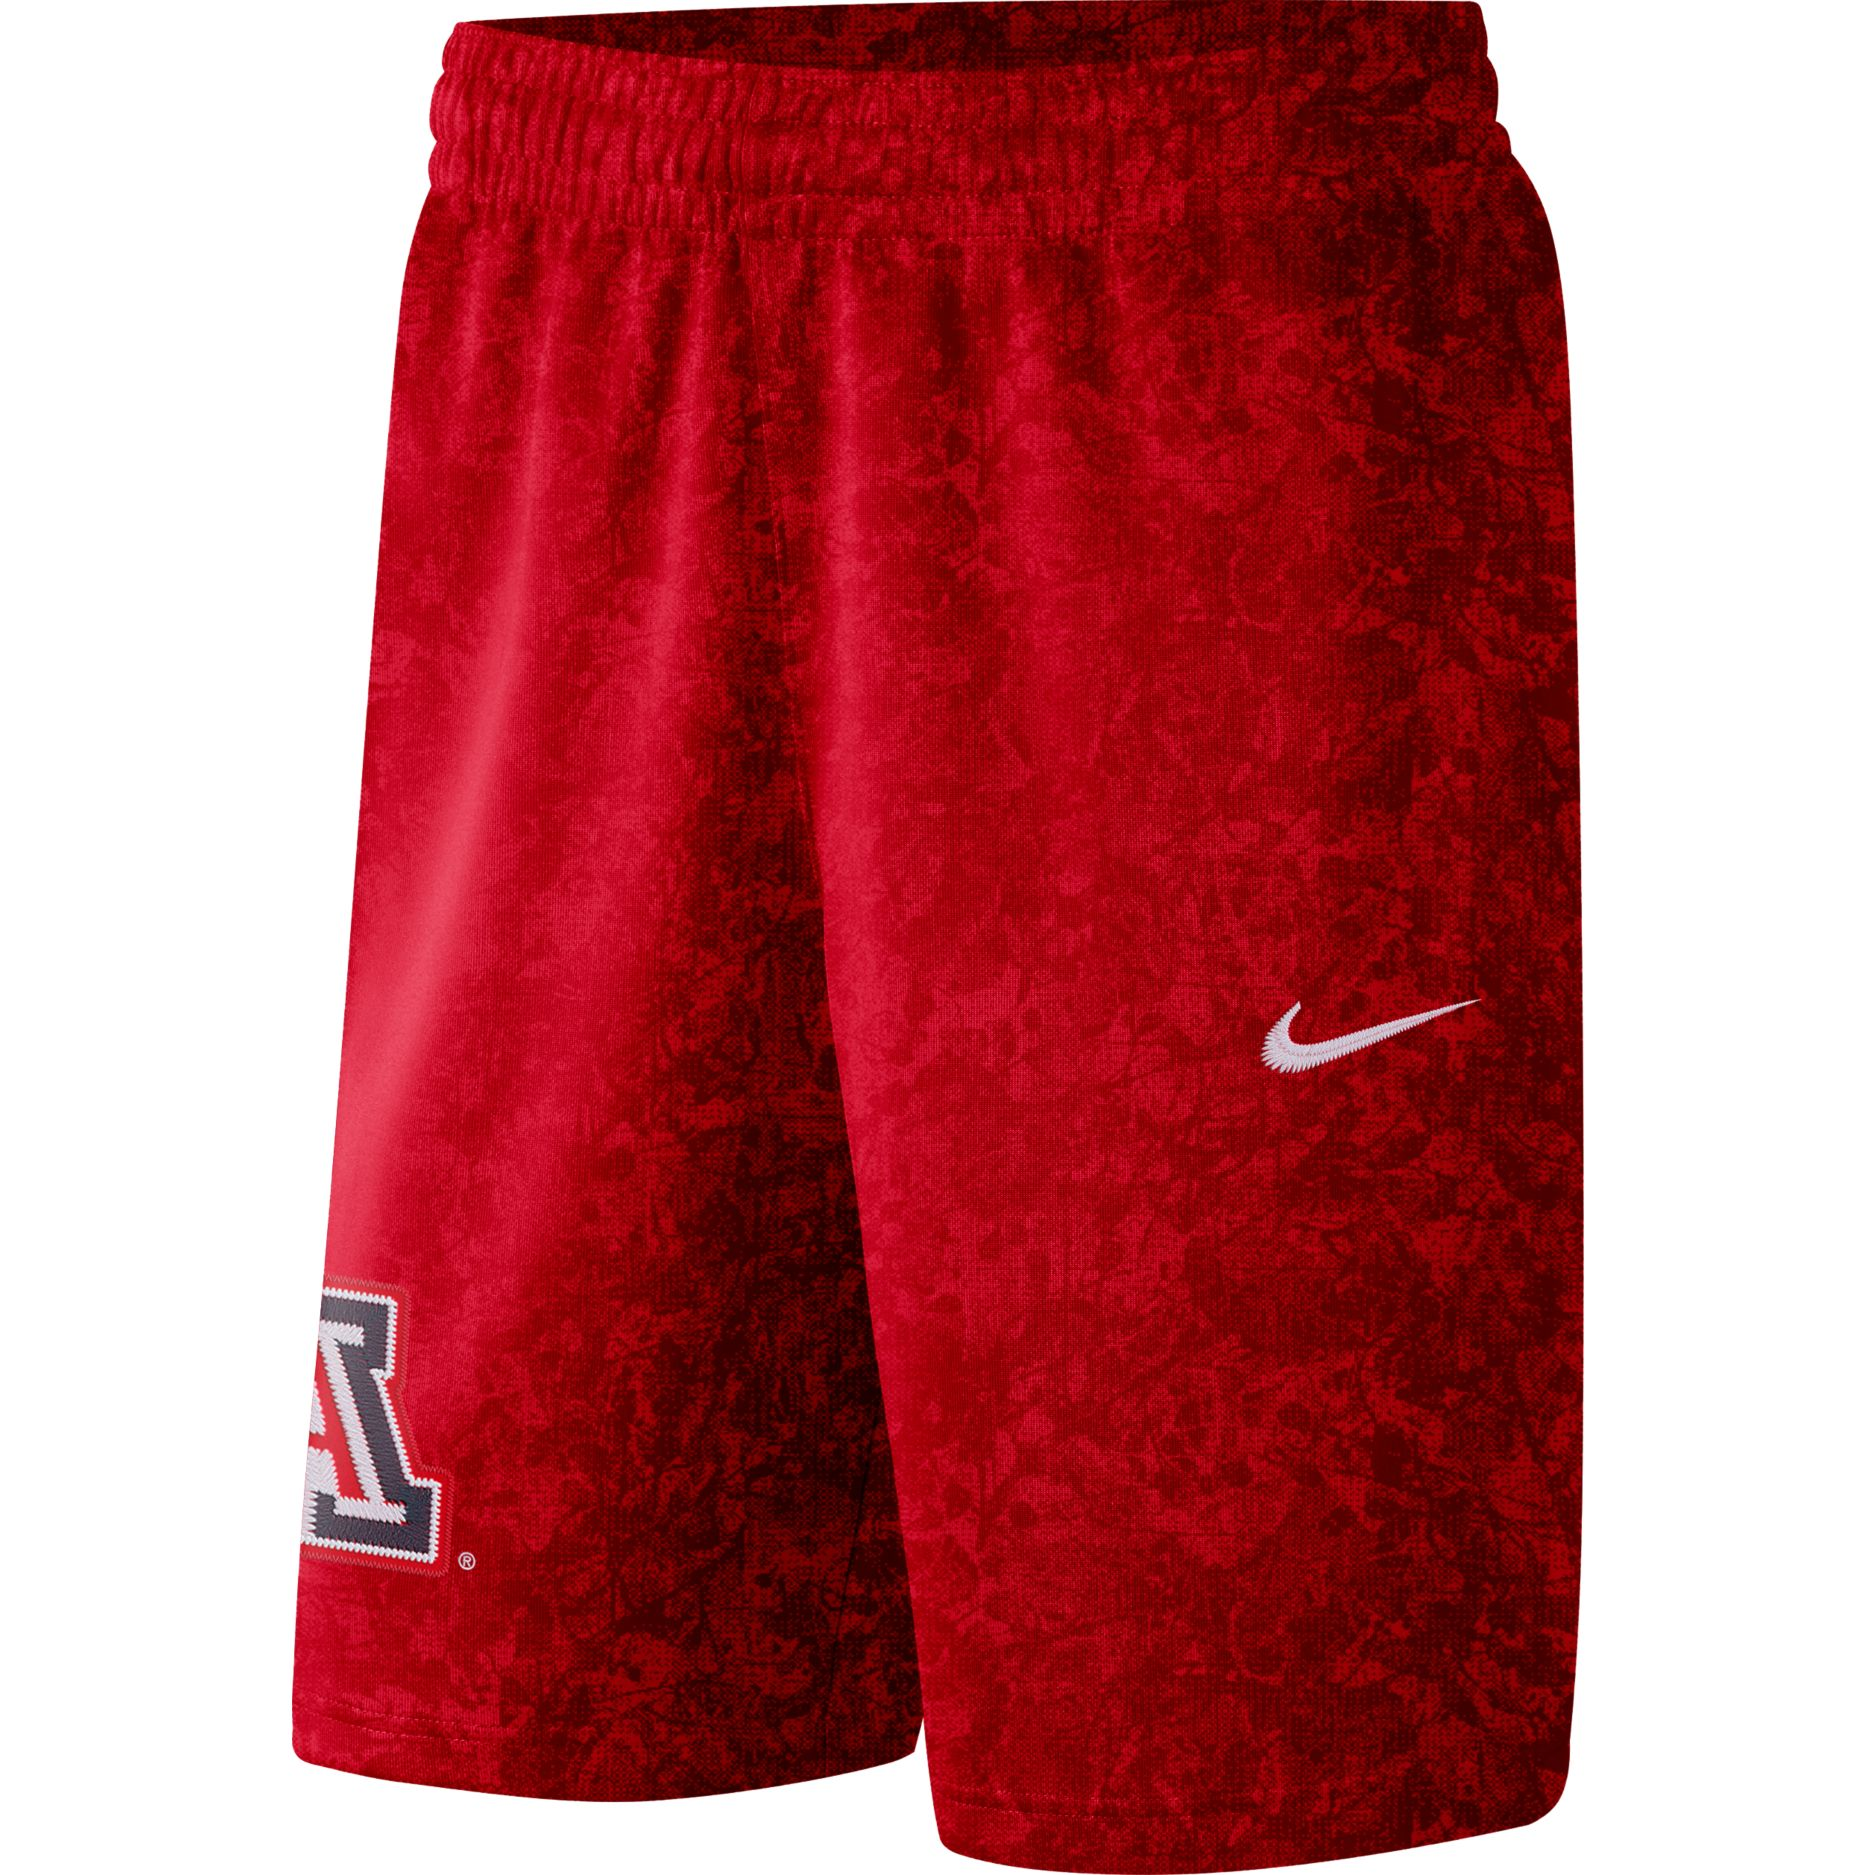 Cover Image For Nike: Arizona Men's Basketball Spotlight Shorts - Red